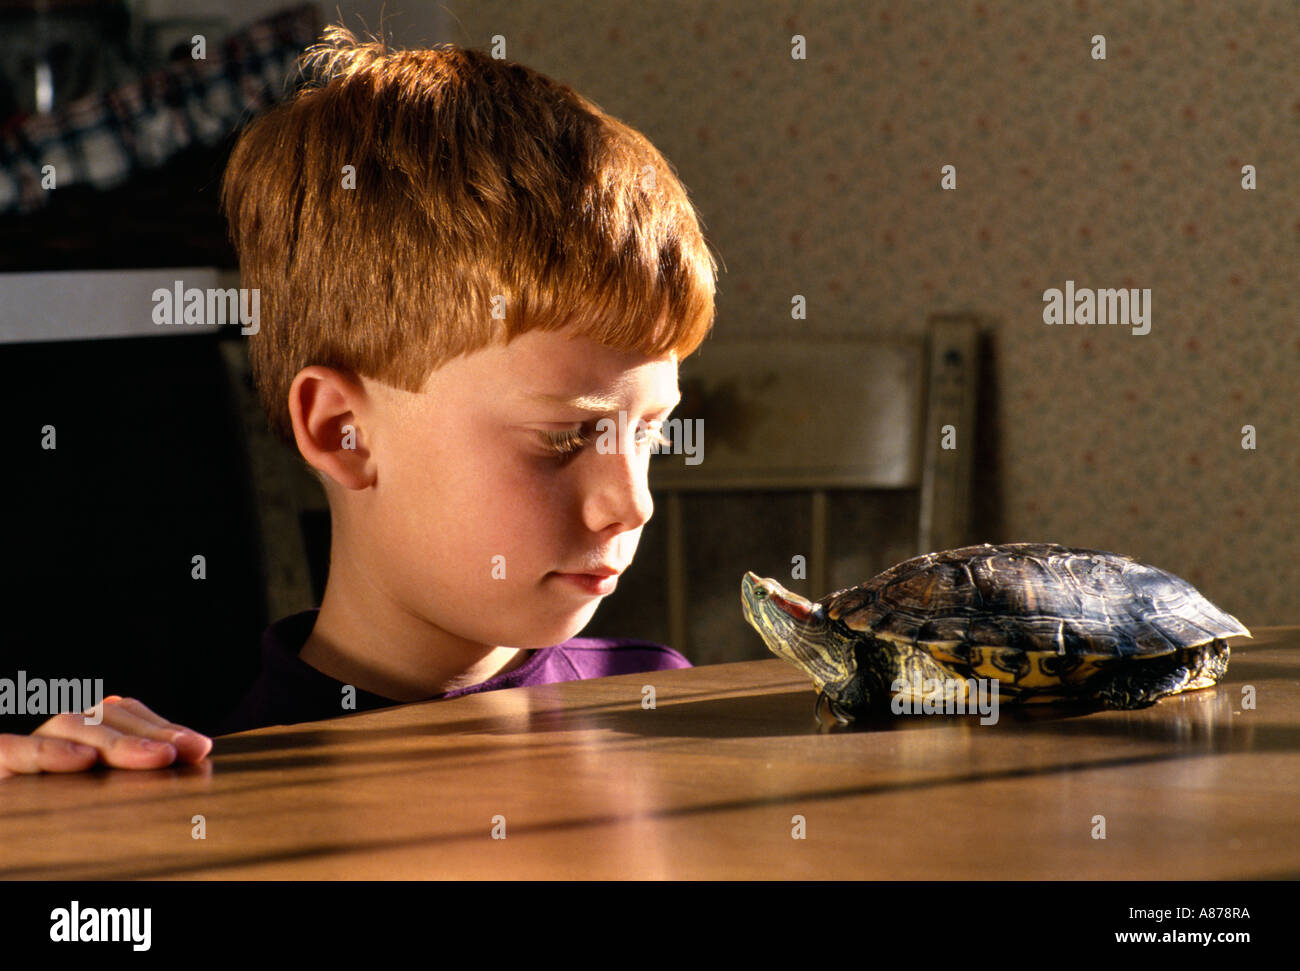 Young boy watching his pet turtle at home - Stock Image